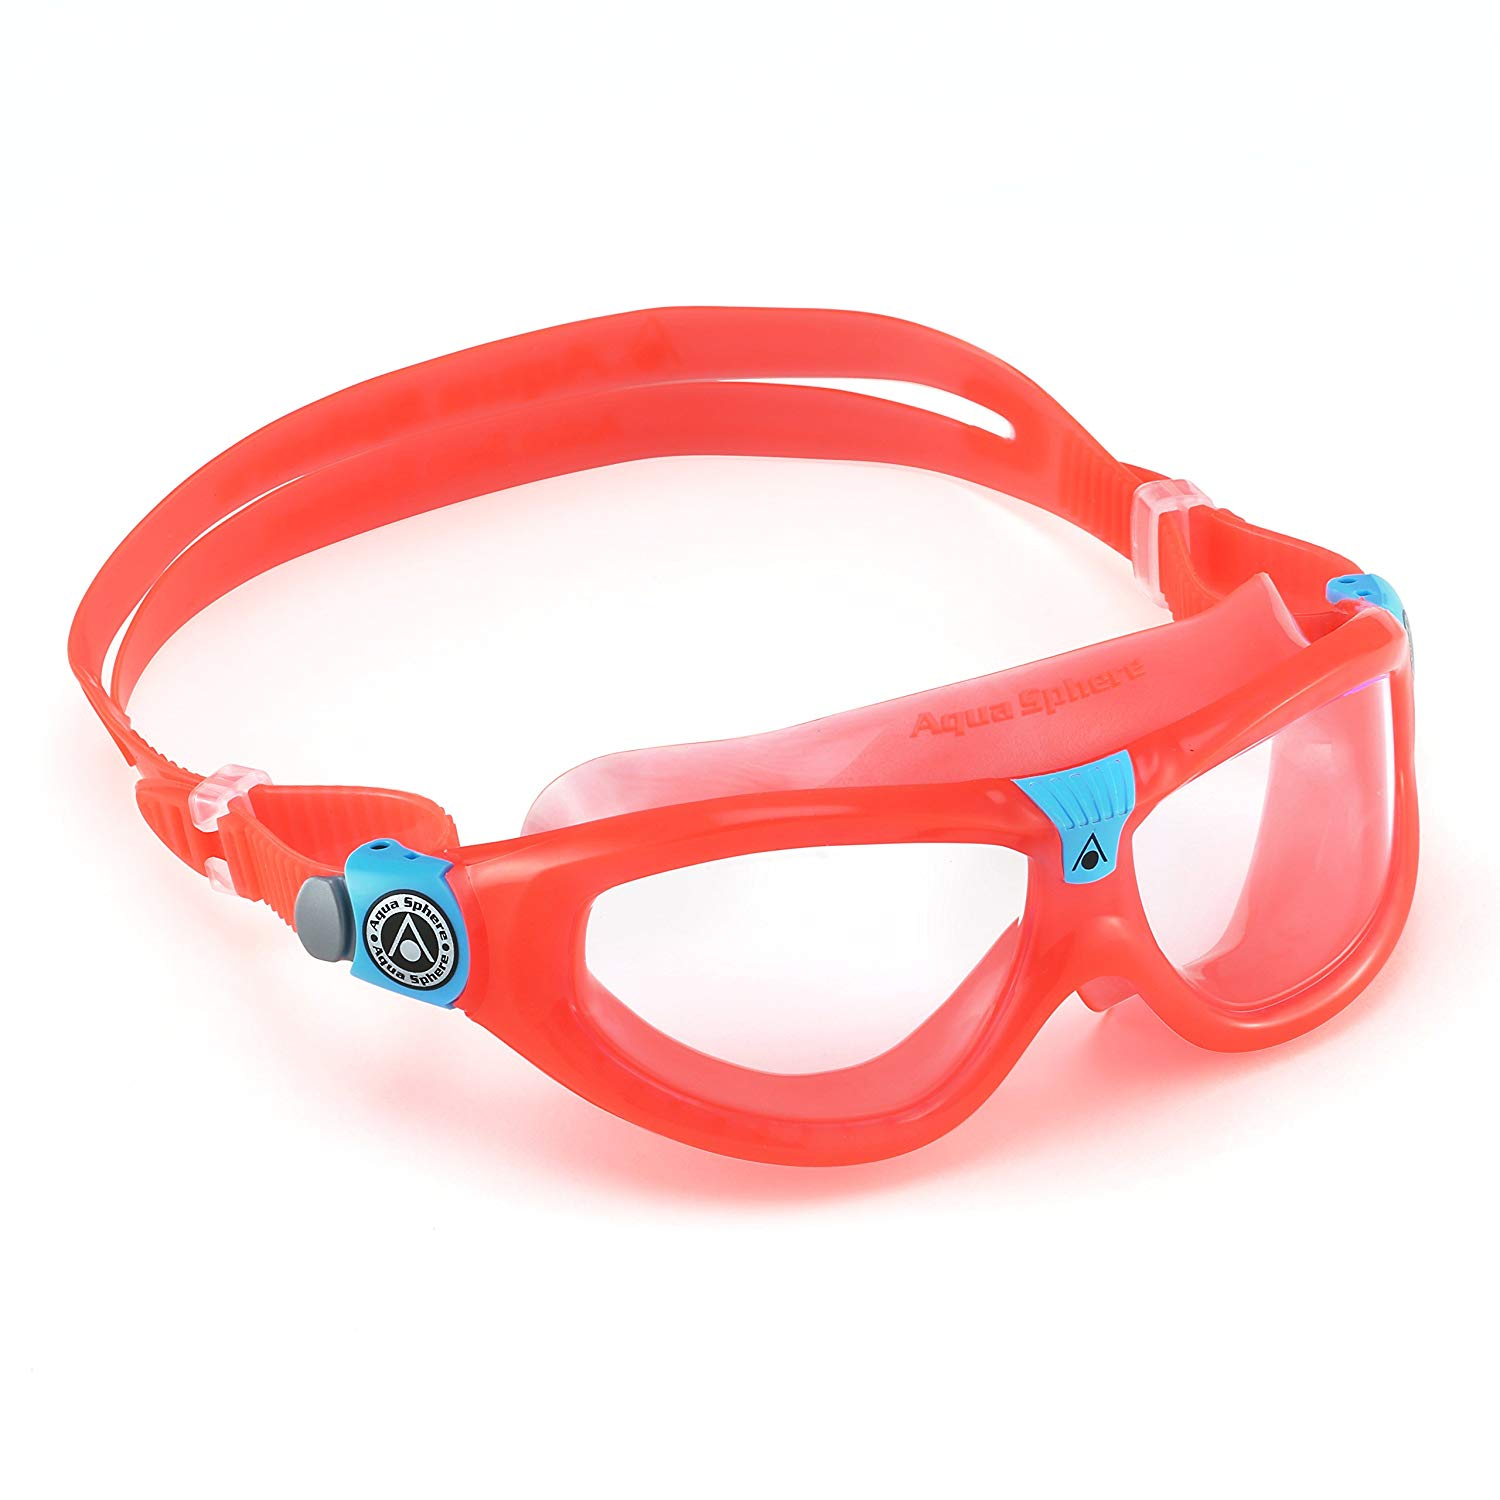 Seal Kid 2 Swim Goggle, Clear Lens   Coral, Mixed, , By Aqua Sphere by